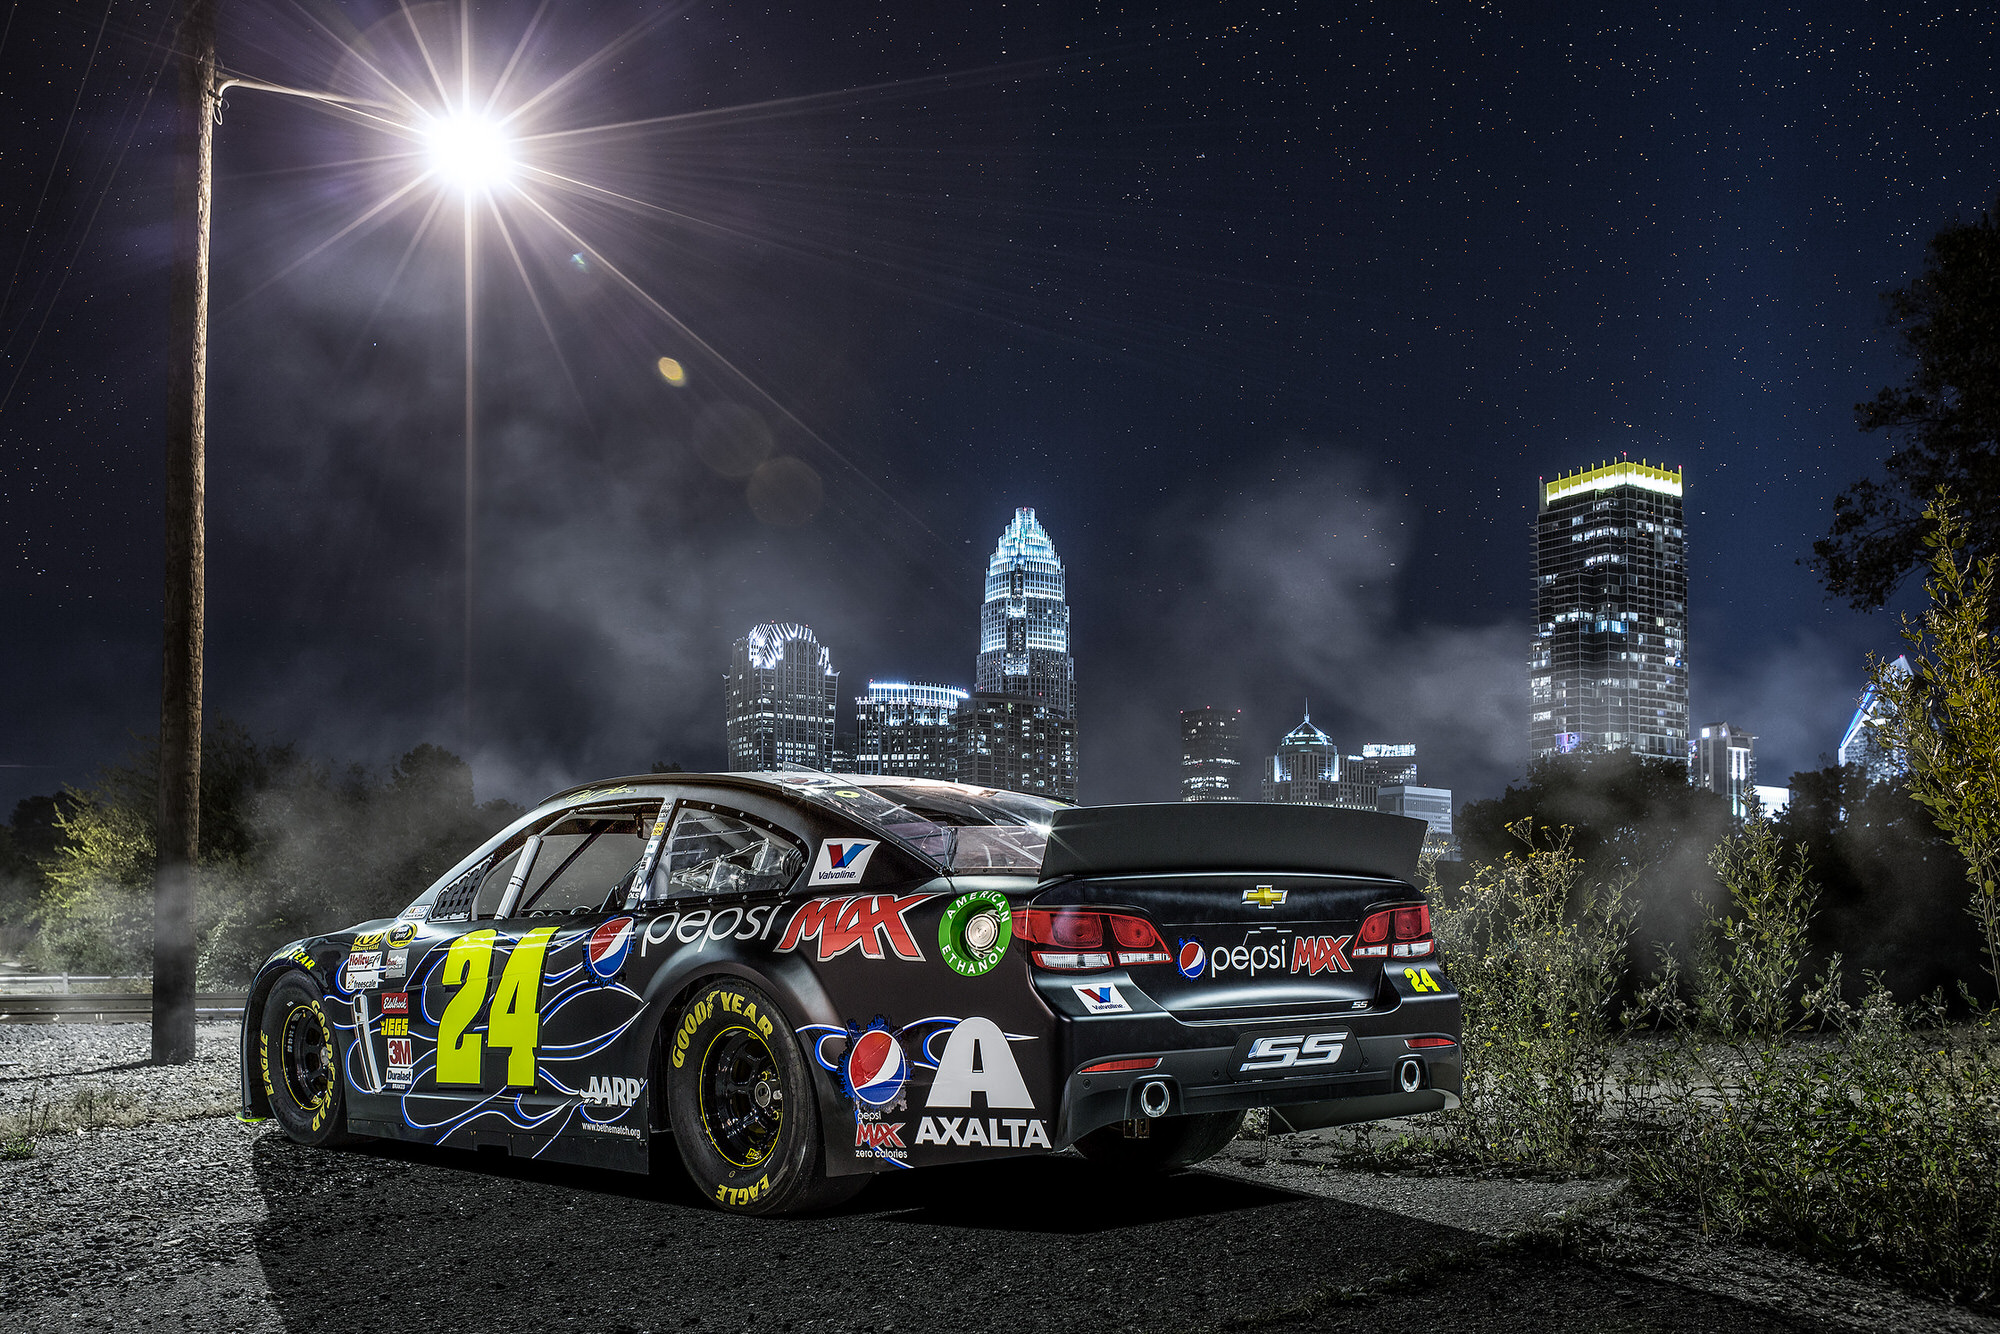 Jeff Gordon Pepsi Max NASCAR commercial advertising photography